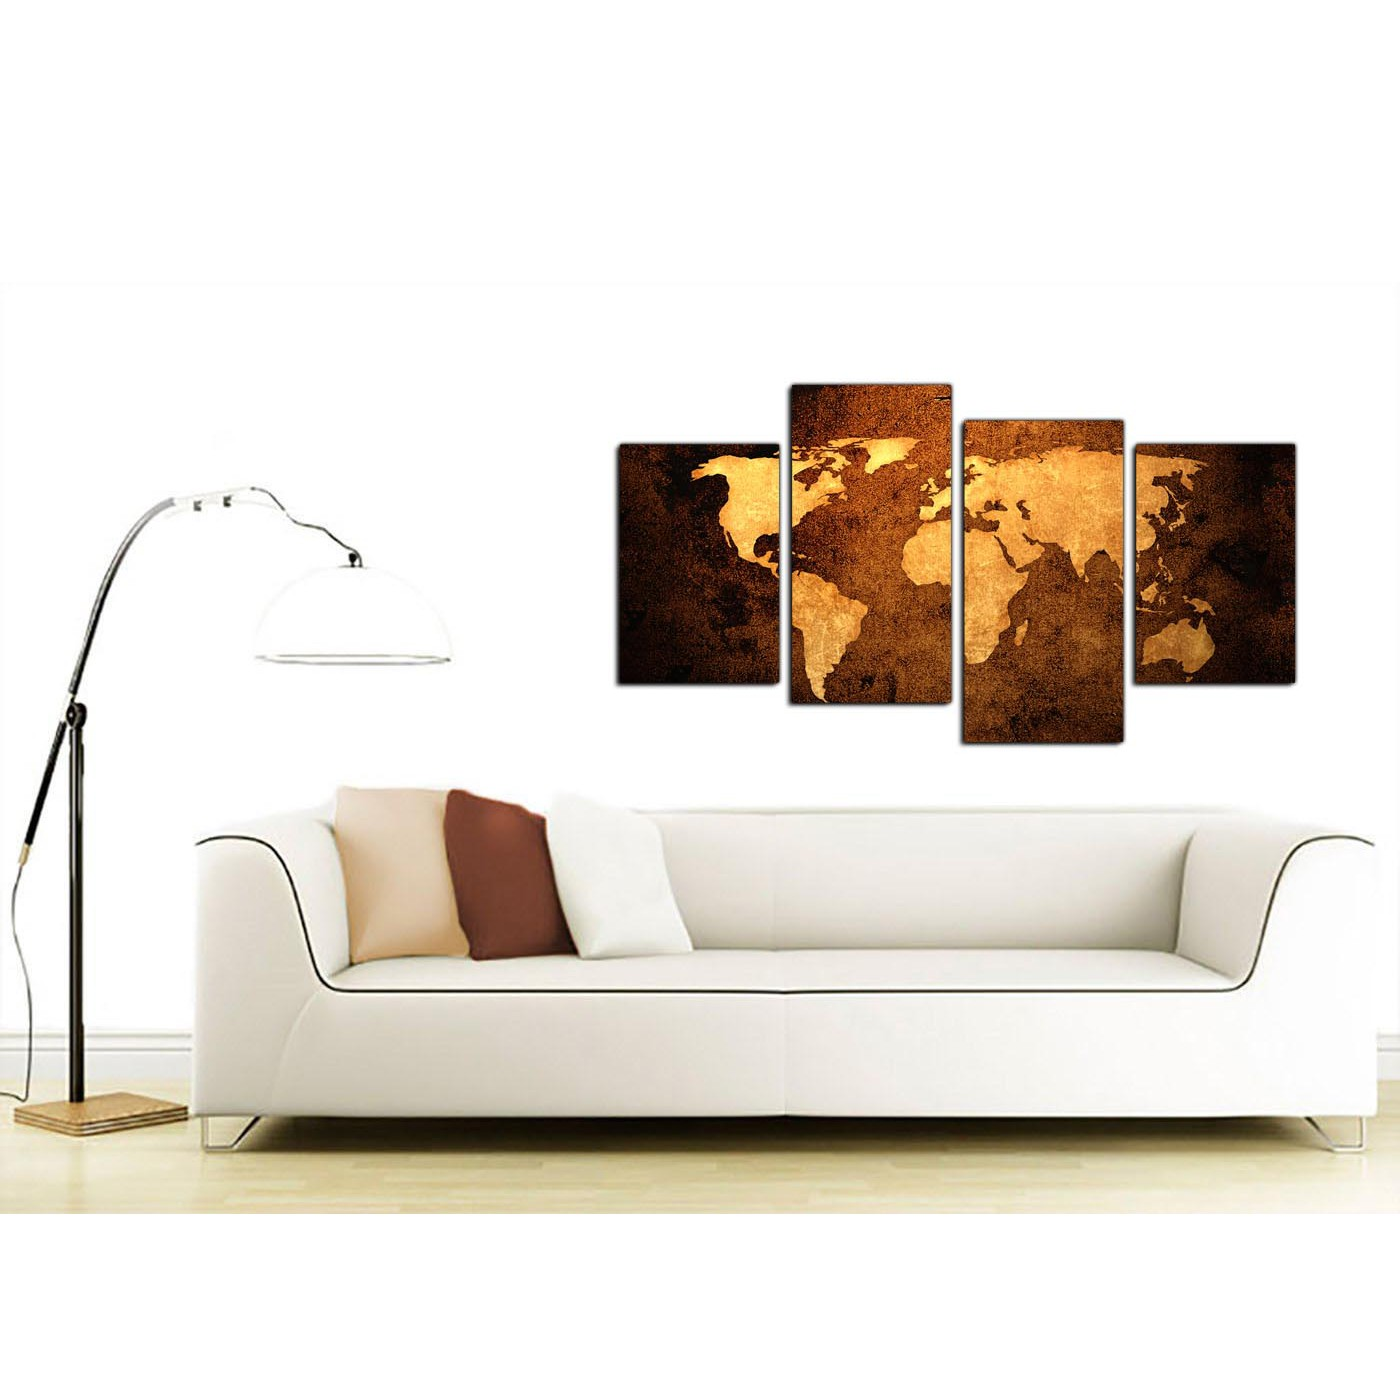 Canvas pictures of a world map in brown for your bedroom display gallery item 1 world map canvas wall art in tan for the home display gallery item 2 gumiabroncs Images